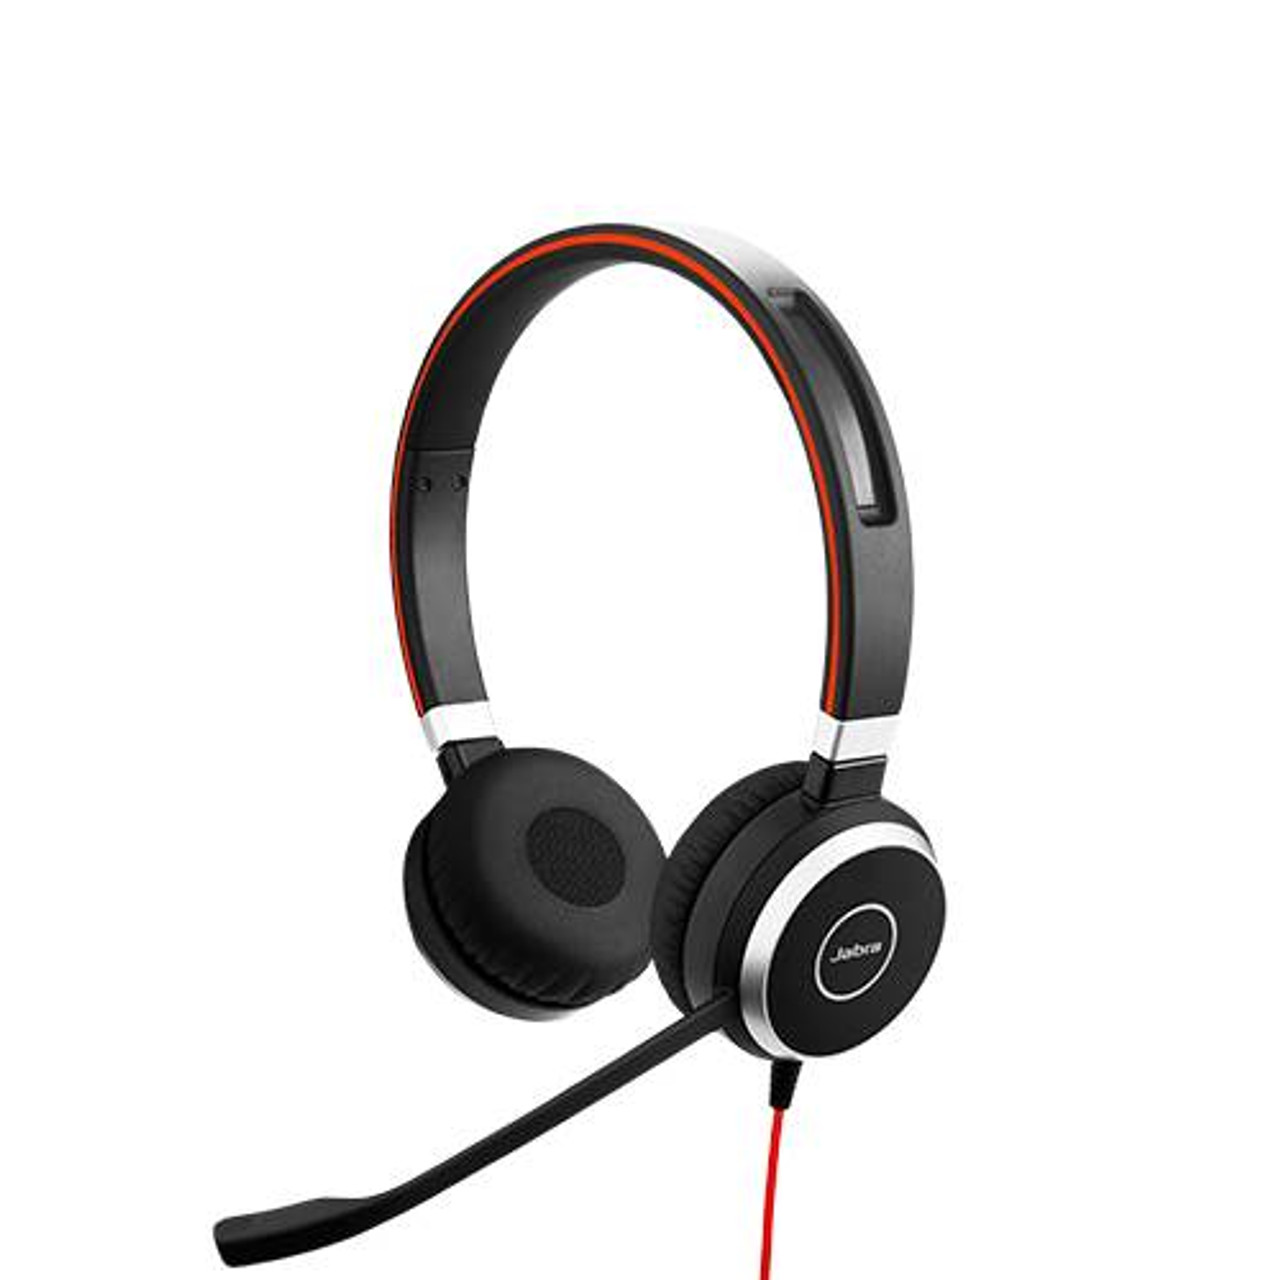 Image for Jabra Evolve 40 MS StereoHD Audio Microsoft certified Headset CX Computer Superstore